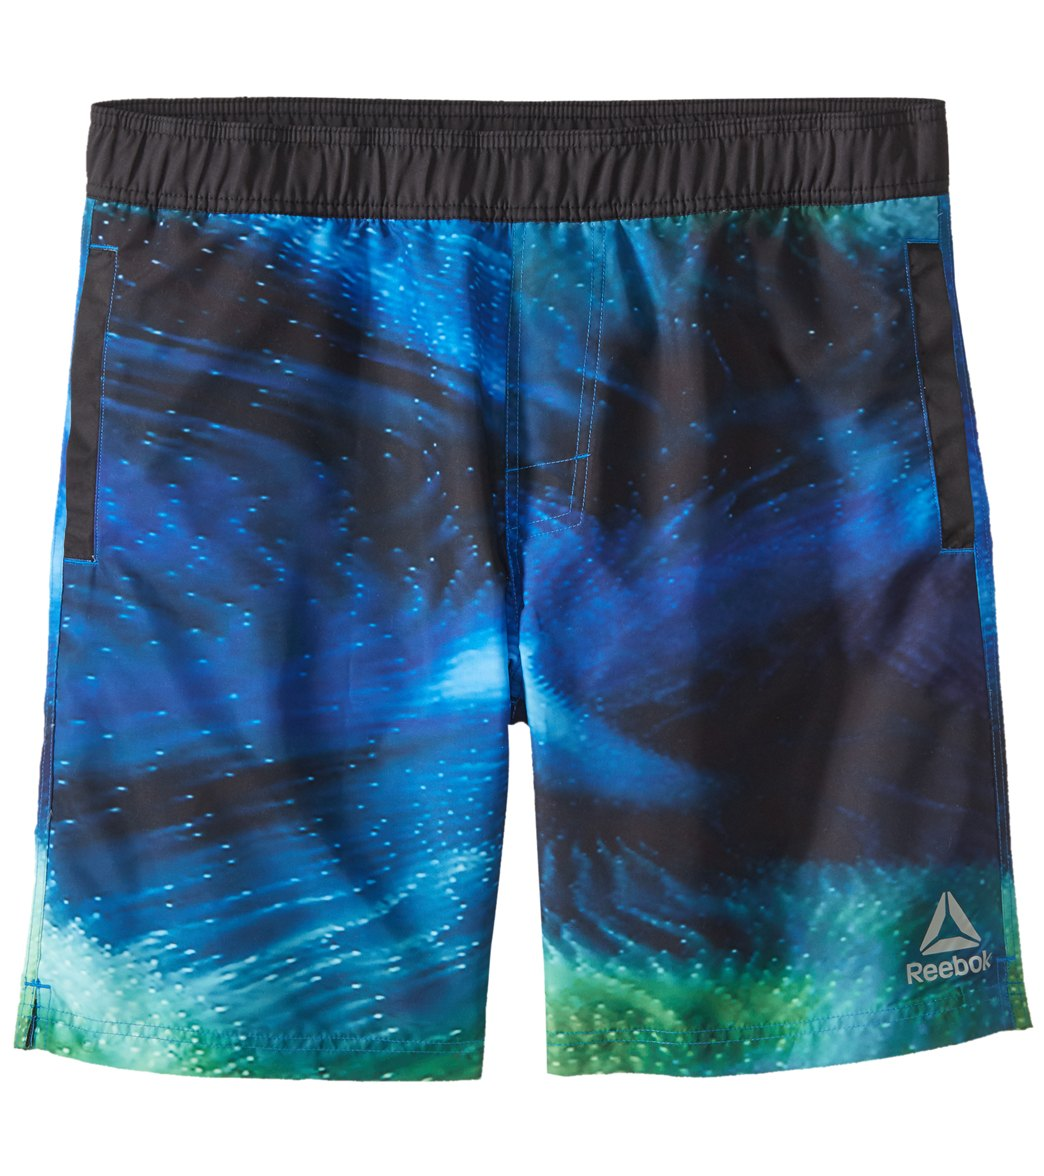 94b776edd586c Reebok Men's Deep Sea 8 inch Volley at SwimOutlet.com - Free Shipping